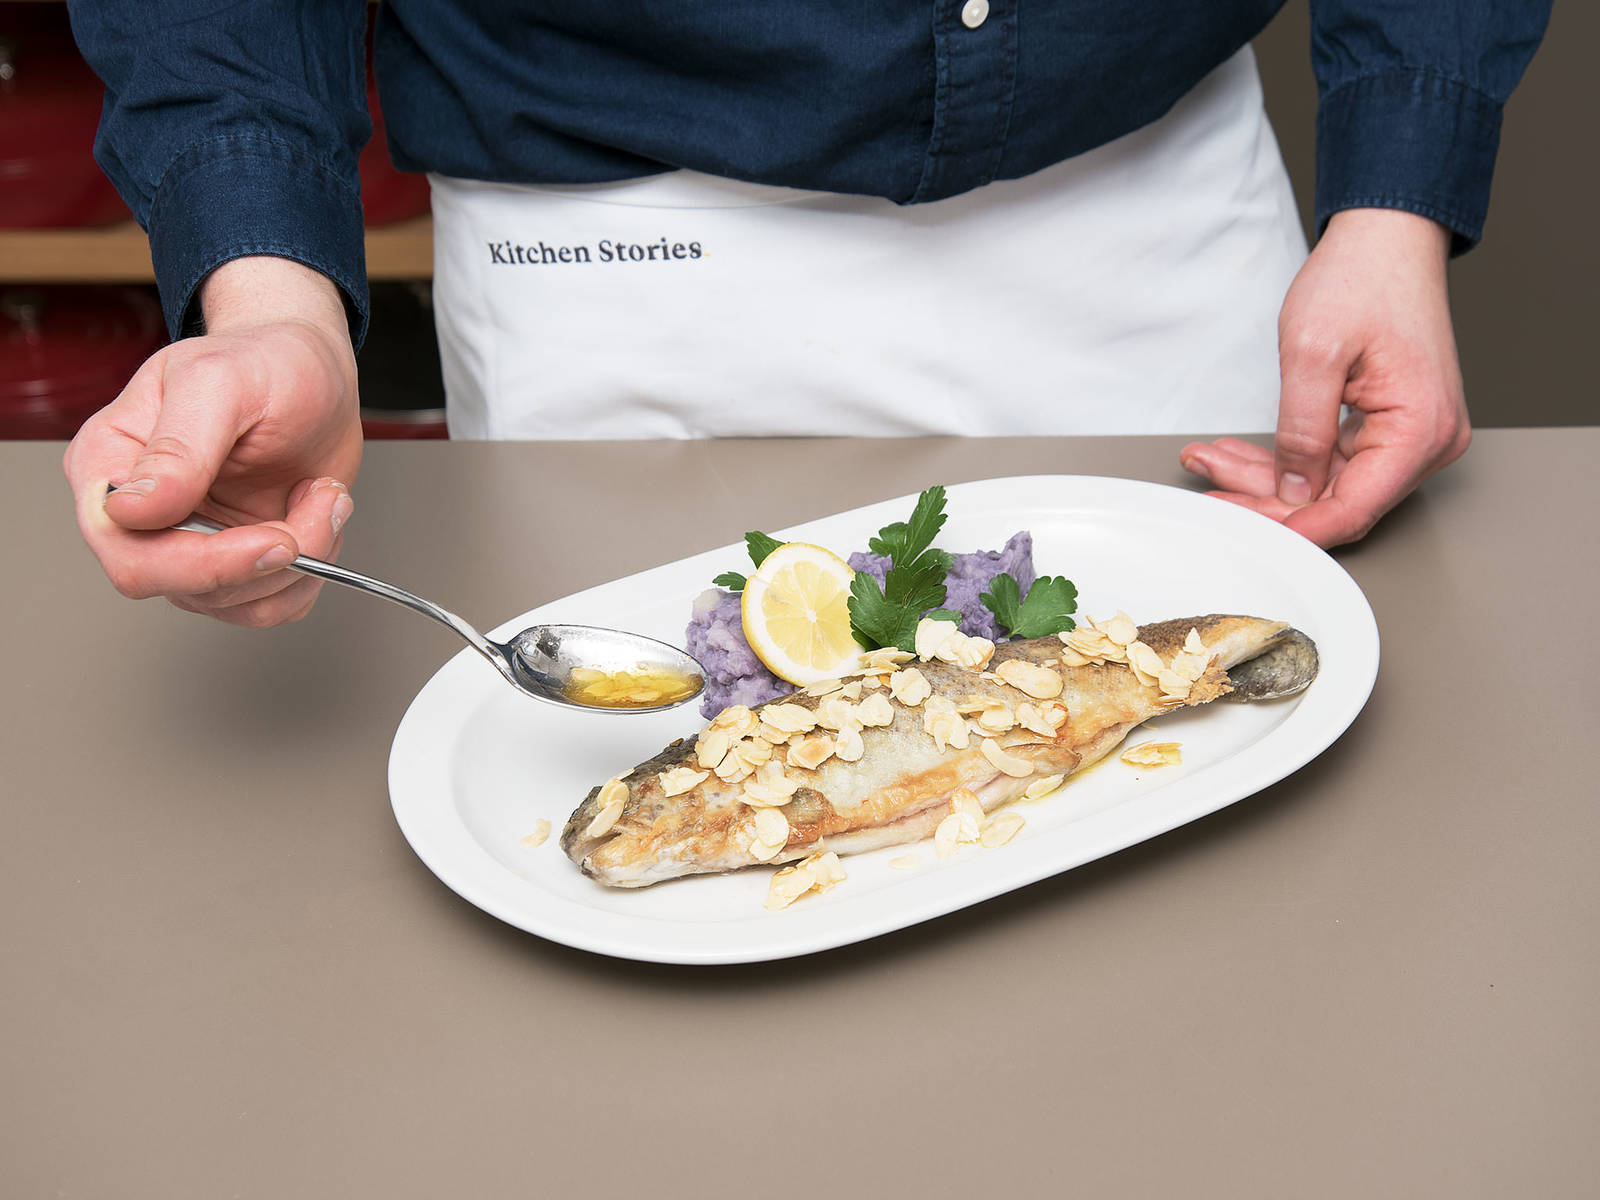 Serve trout on a plate and drizzle with almond butter. Serve with potato purée and a lemon wedge and enjoy!